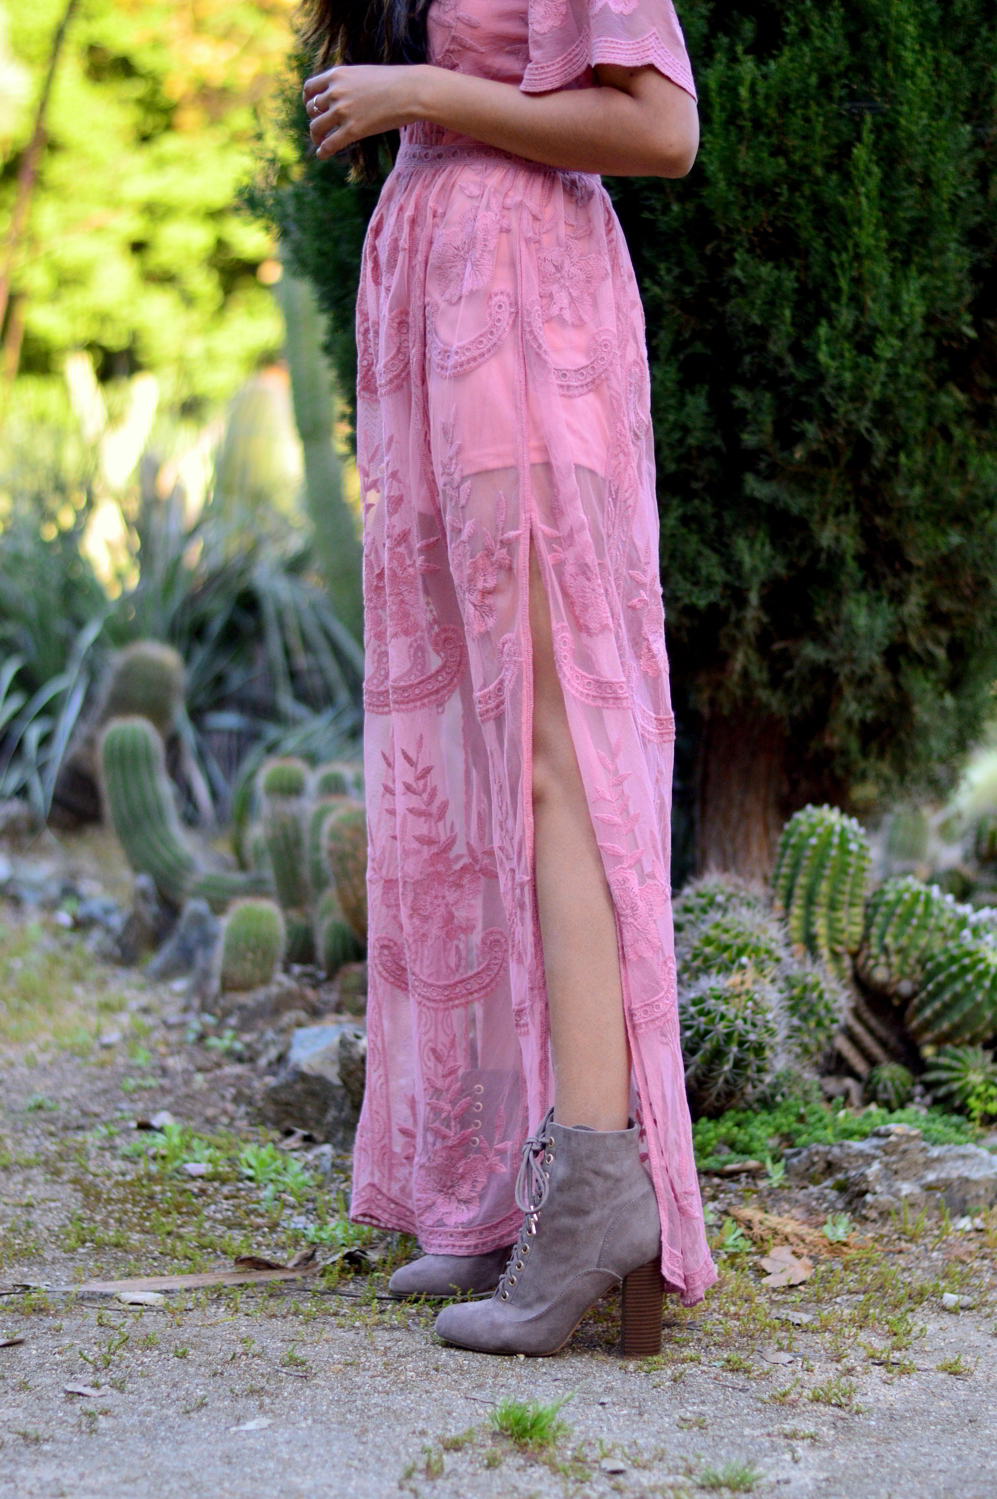 pink-lace-maxi-romper-boho-festival-fashion-bohemian-style-desert-blogger-outfit 9